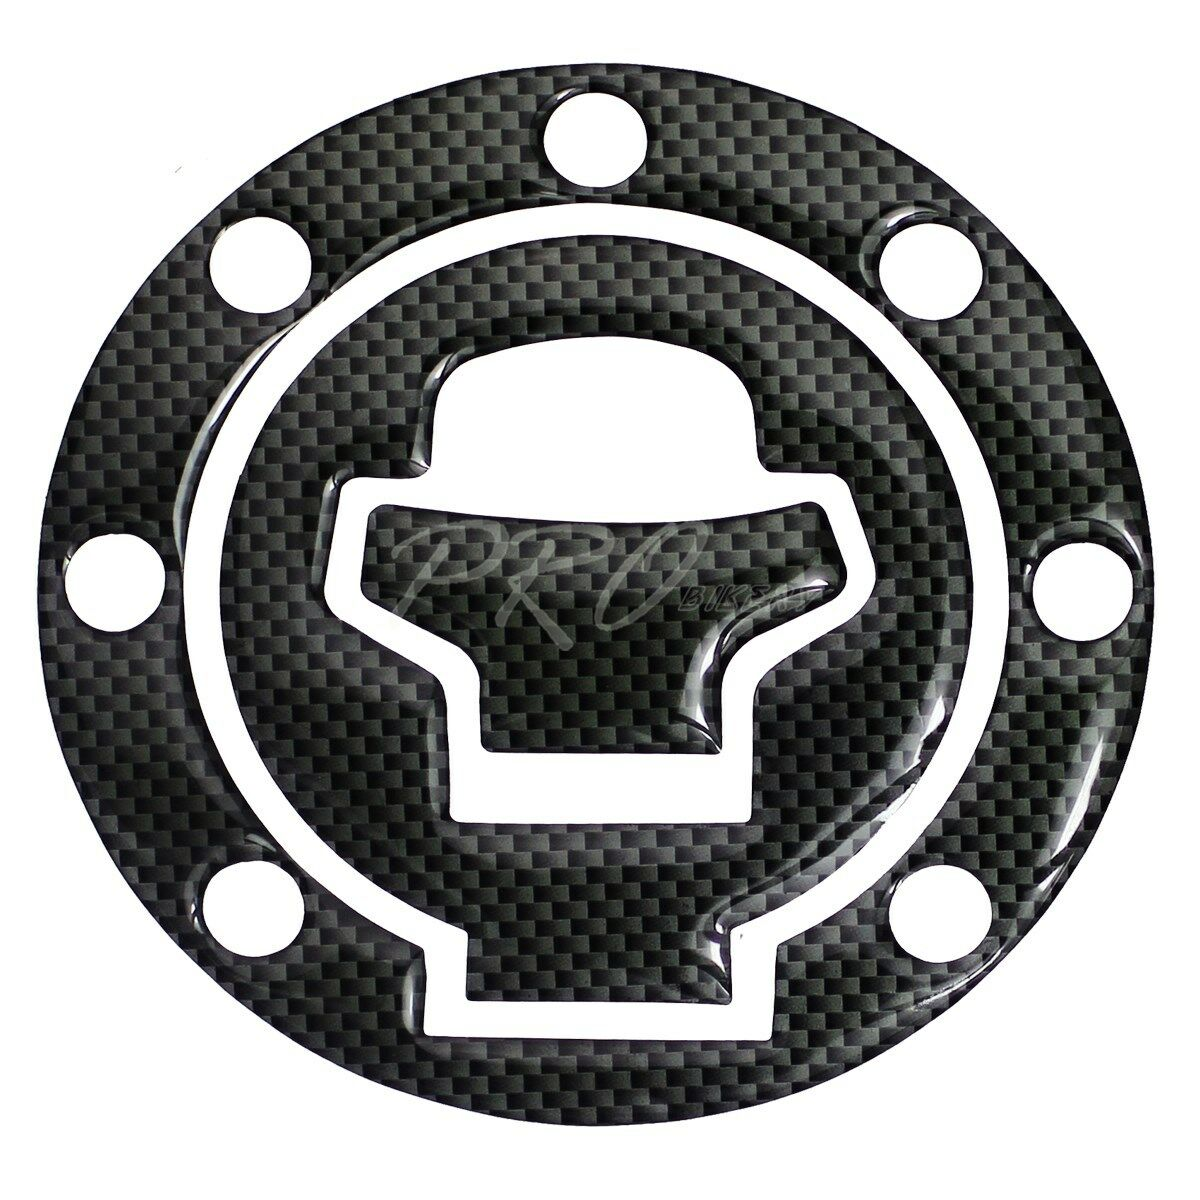 SUZUKI GSX600F 1998-2005 Carbon Fiber Look Top Yoke Protector Cover Decal